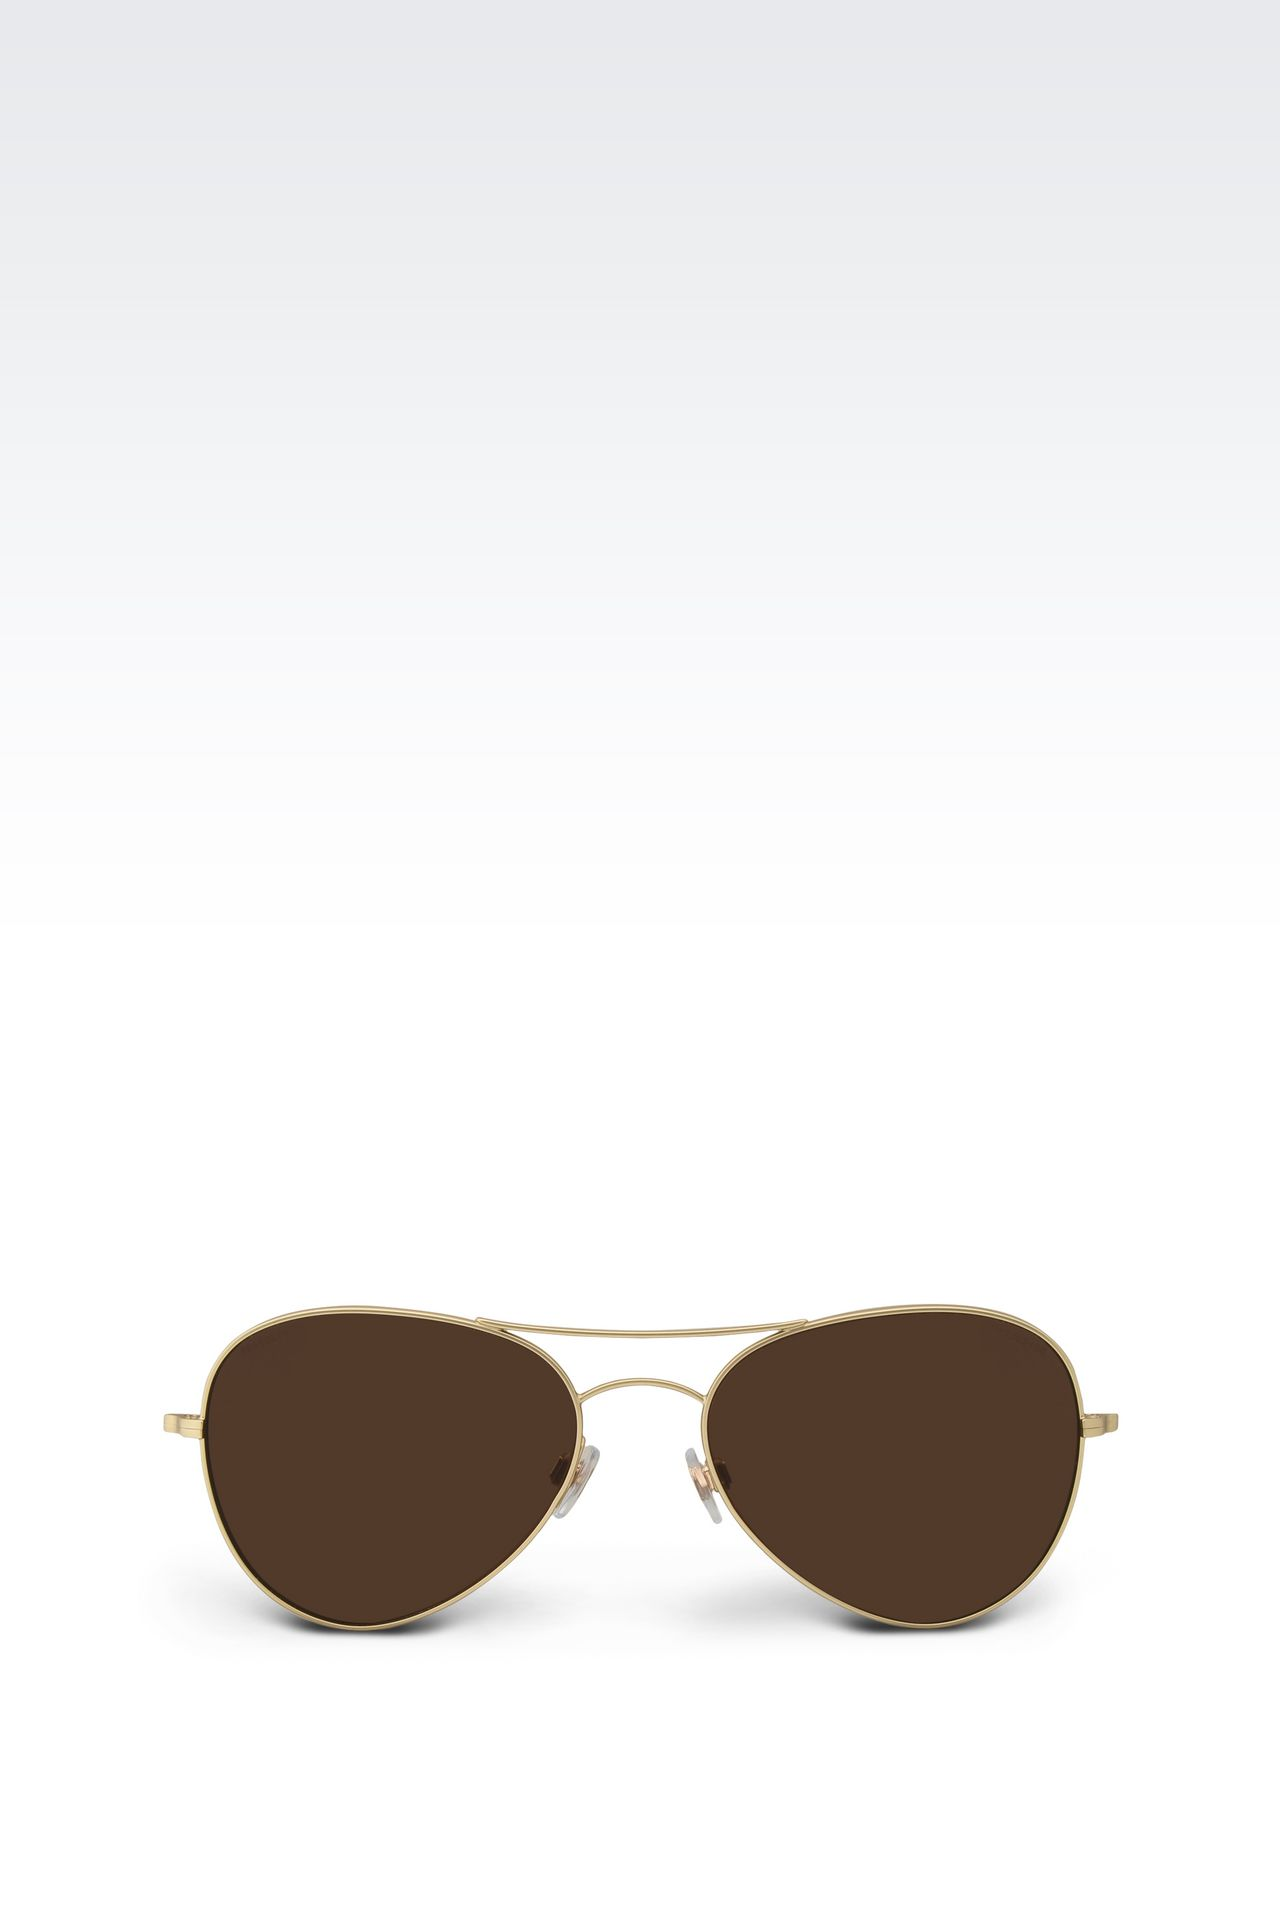 sunglasses from the giorgio armani frames of life collection sunglasses men by armani 0